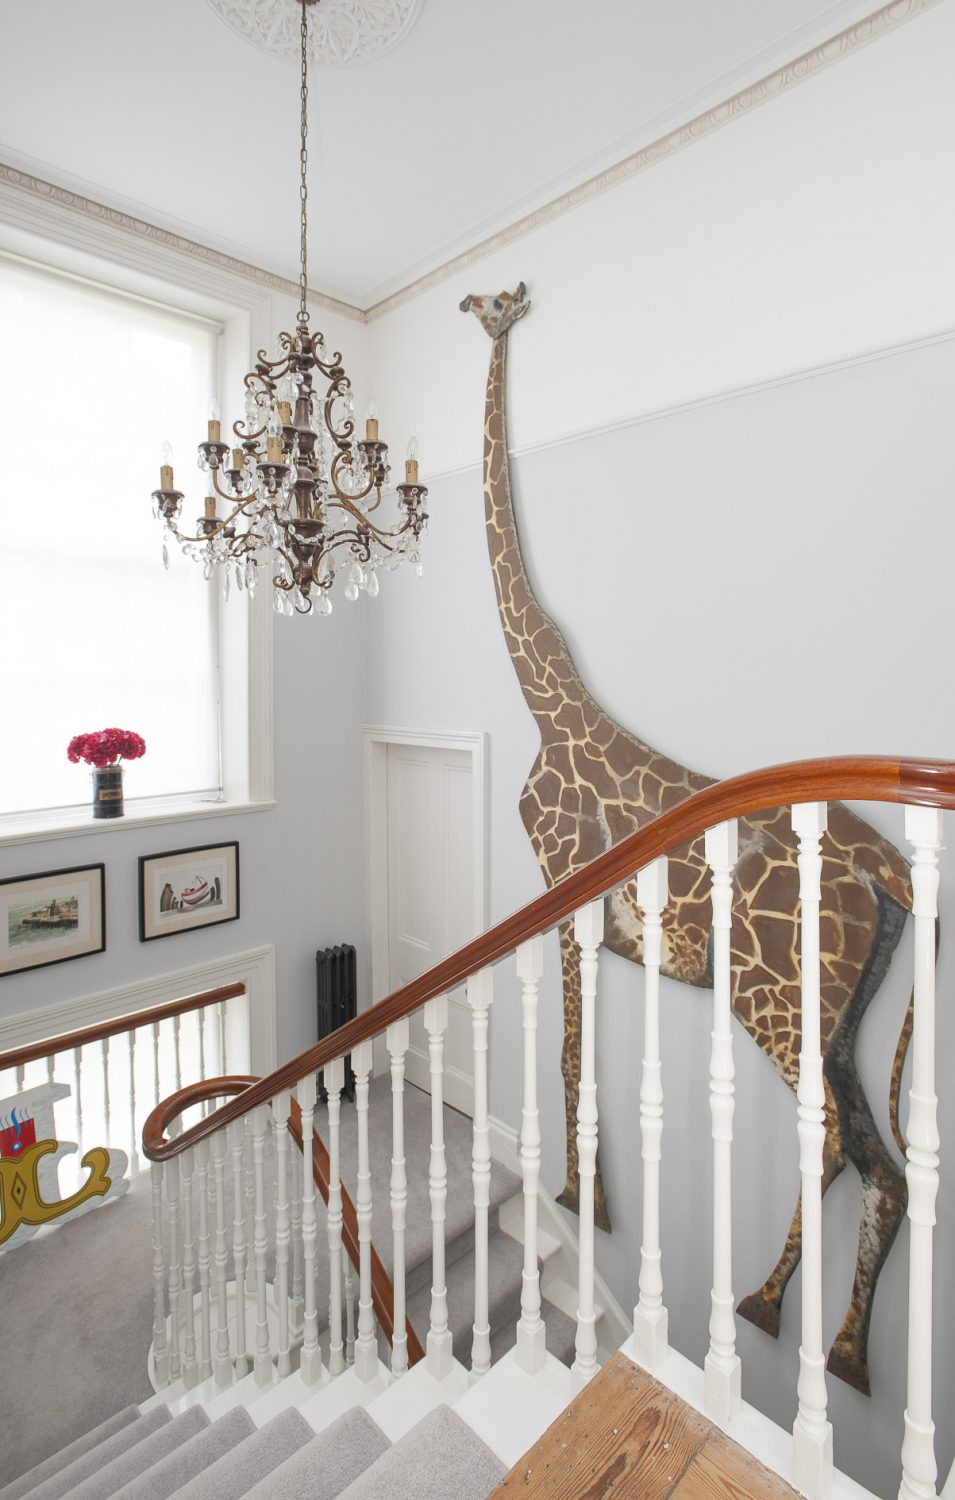 A full sized cut-out of a giraffe reaches virtually from the ground to first floor